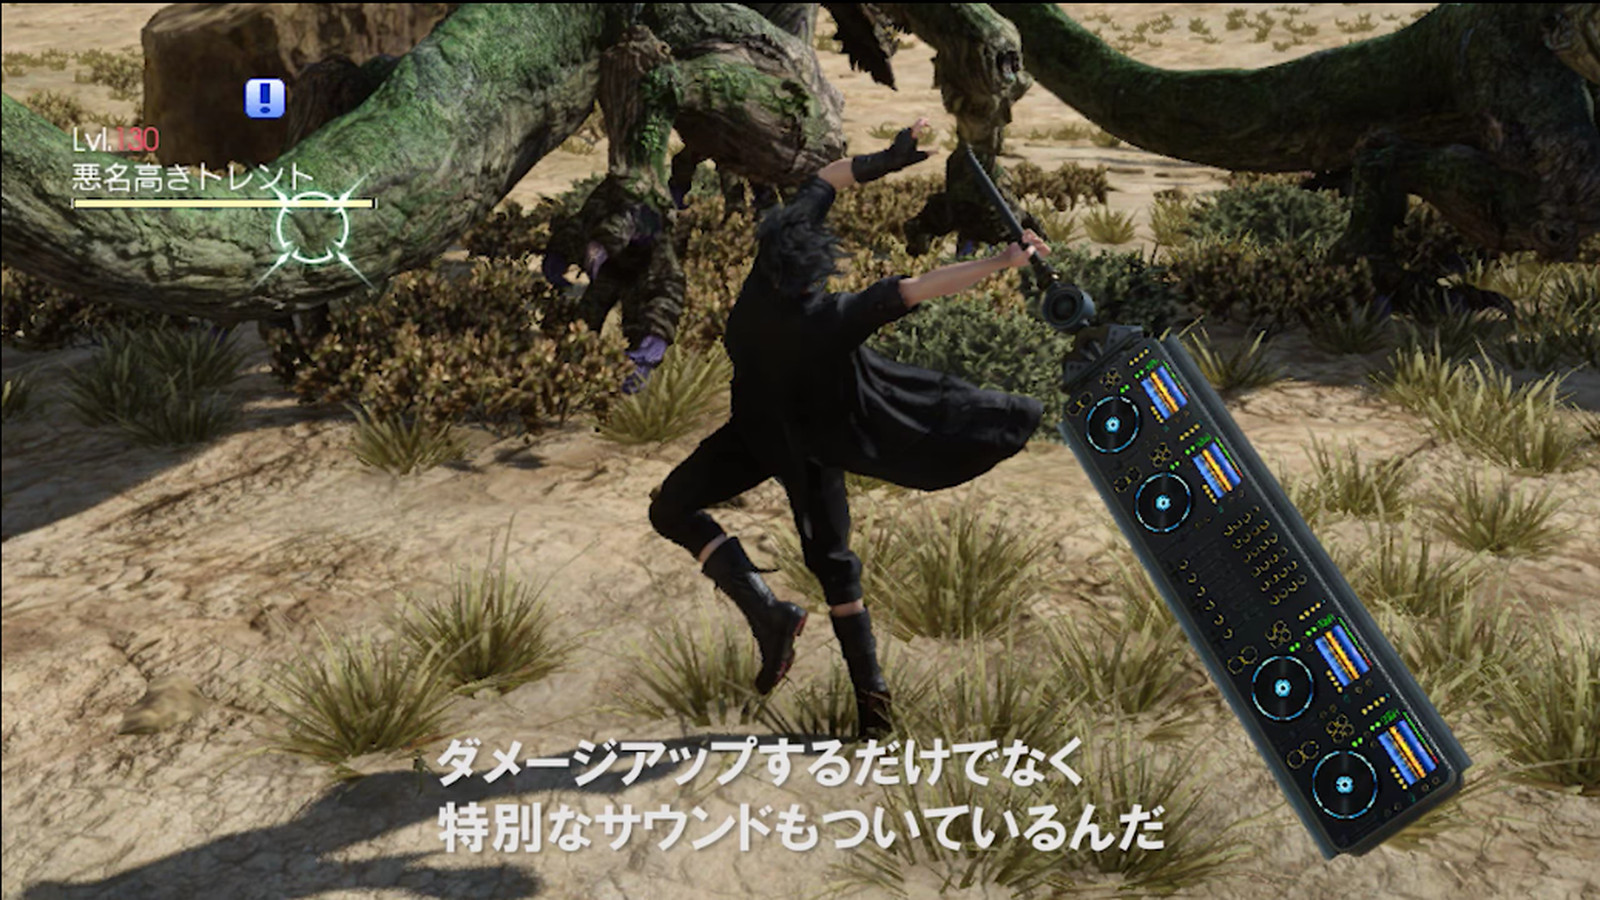 Final Fantasy 15's getting a very, very silly weapon